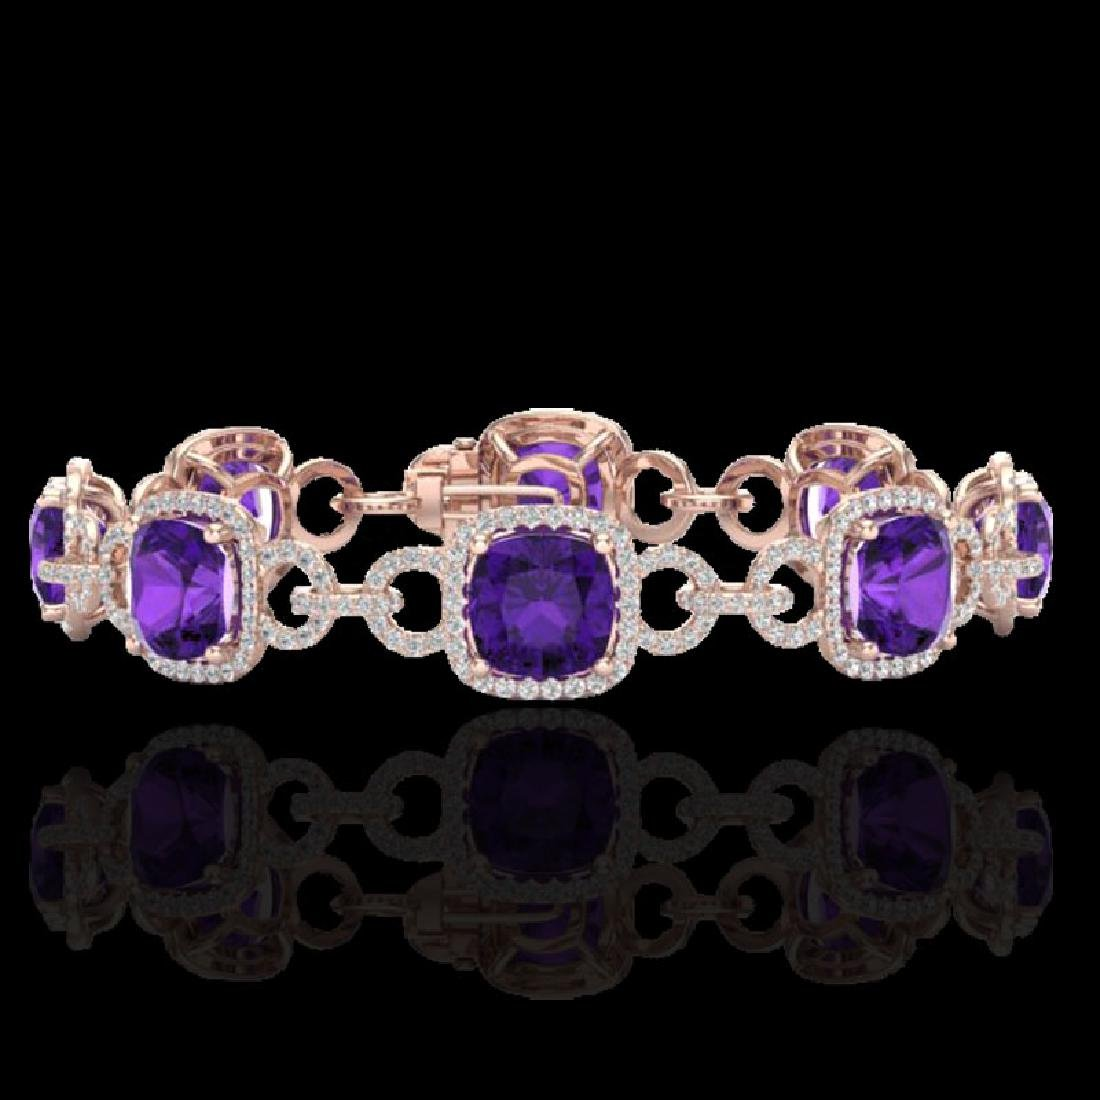 30 CTW Amethyst & Micro VS/SI Diamond Bracelet 14K Rose